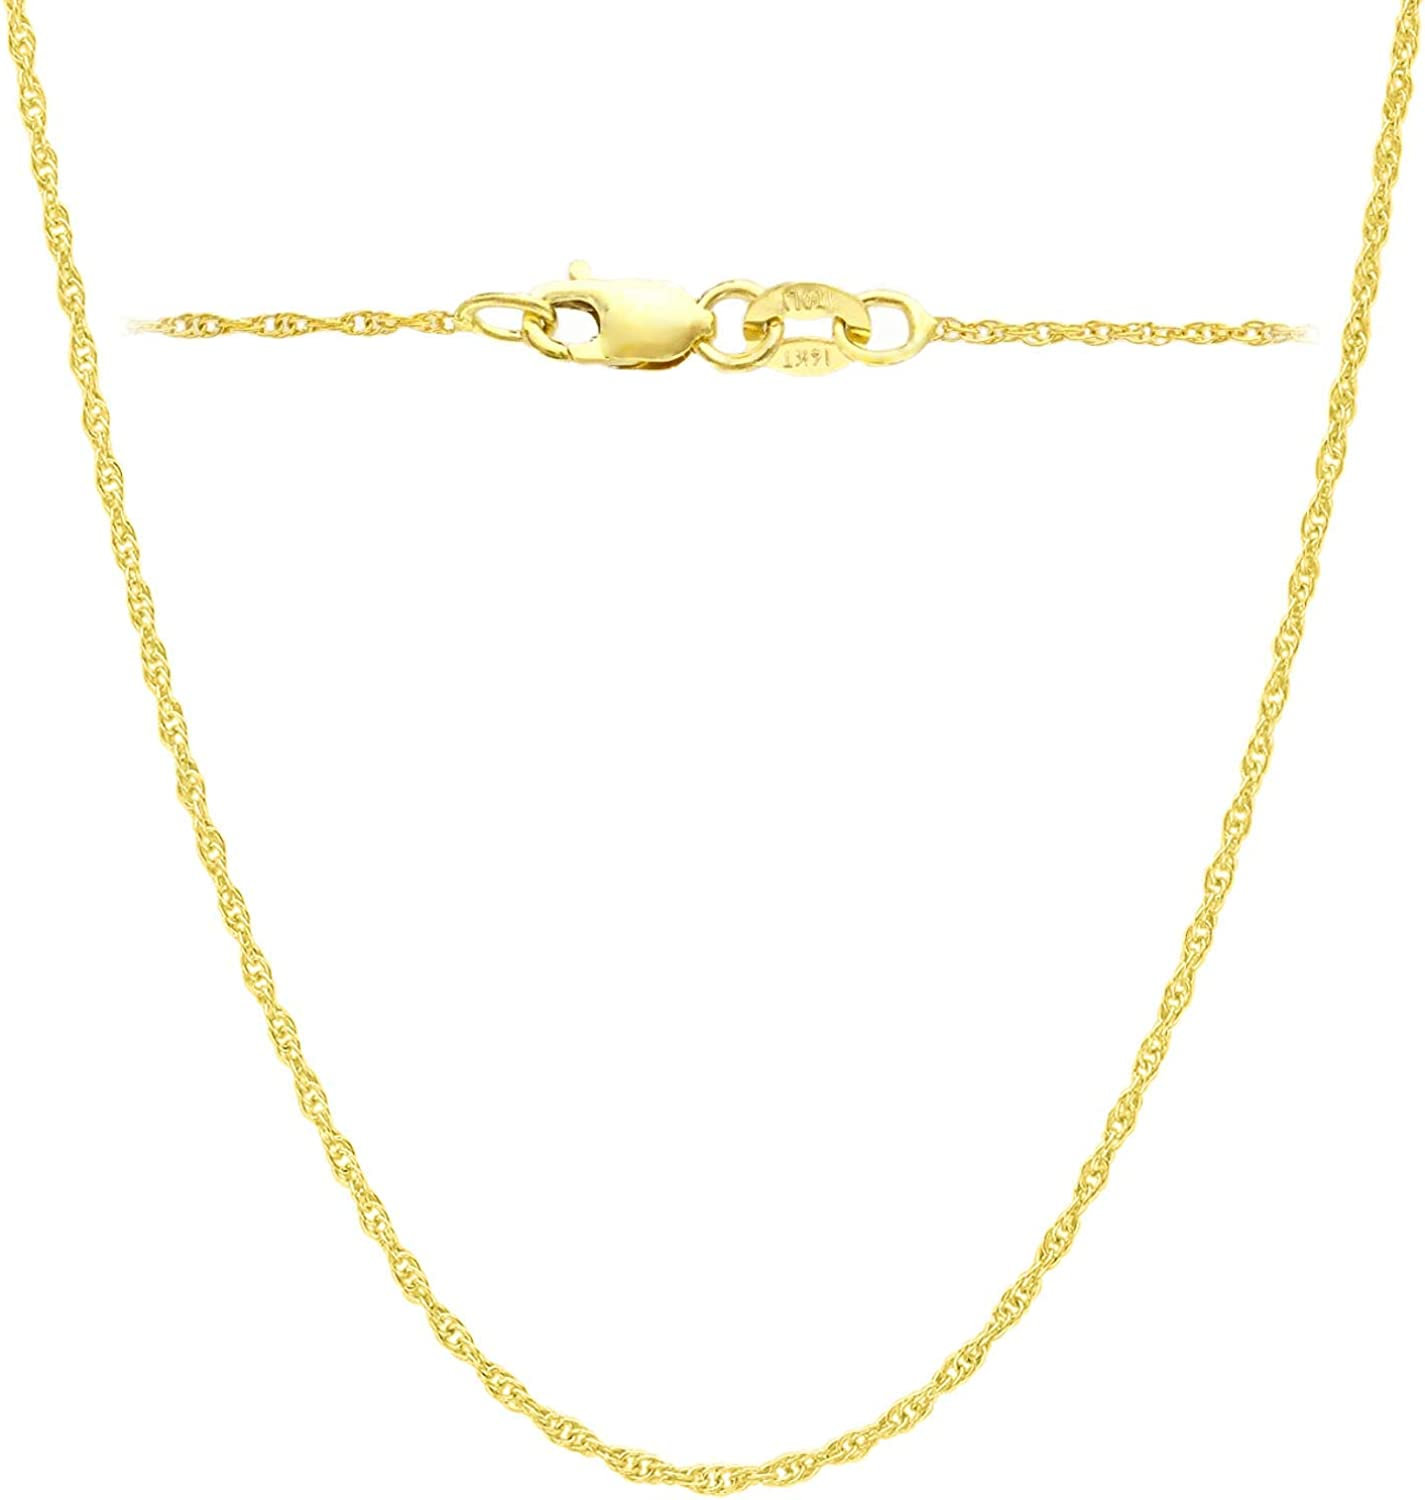 14K Special price for a limited time 10K Yellow or Financial sales sale White Solid Gold mm 1.2 Italian Cut 1 Diamond